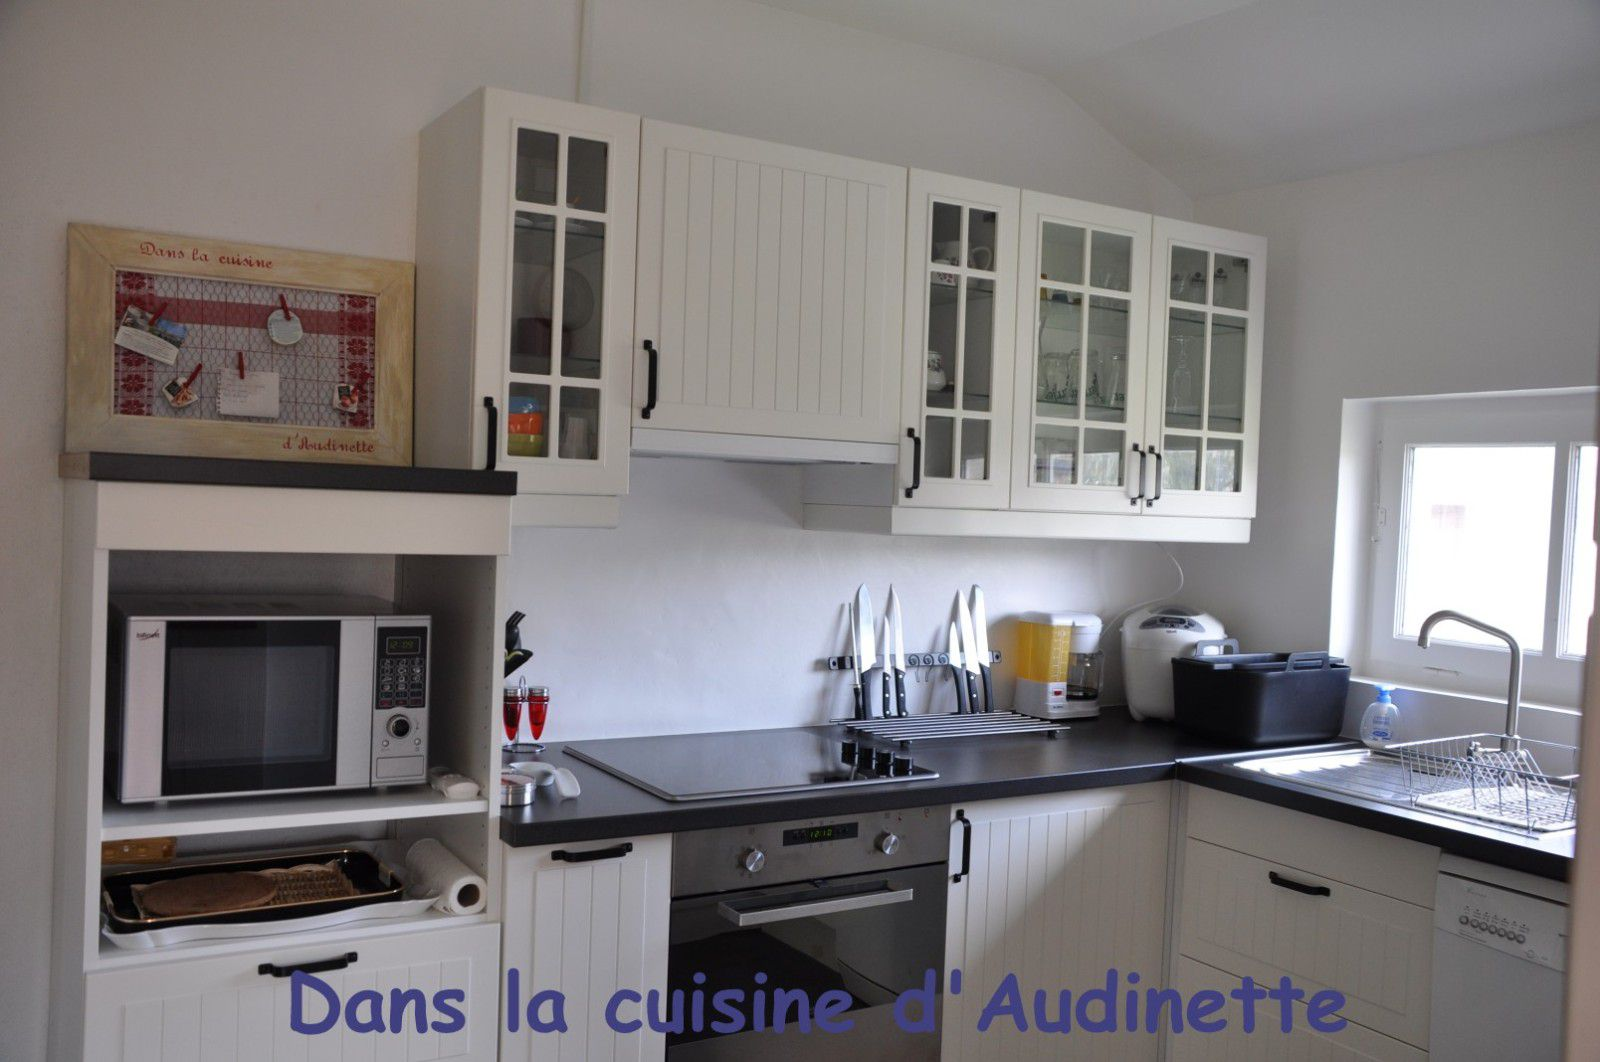 derniers travaux dans la cuisine la cr dence en. Black Bedroom Furniture Sets. Home Design Ideas